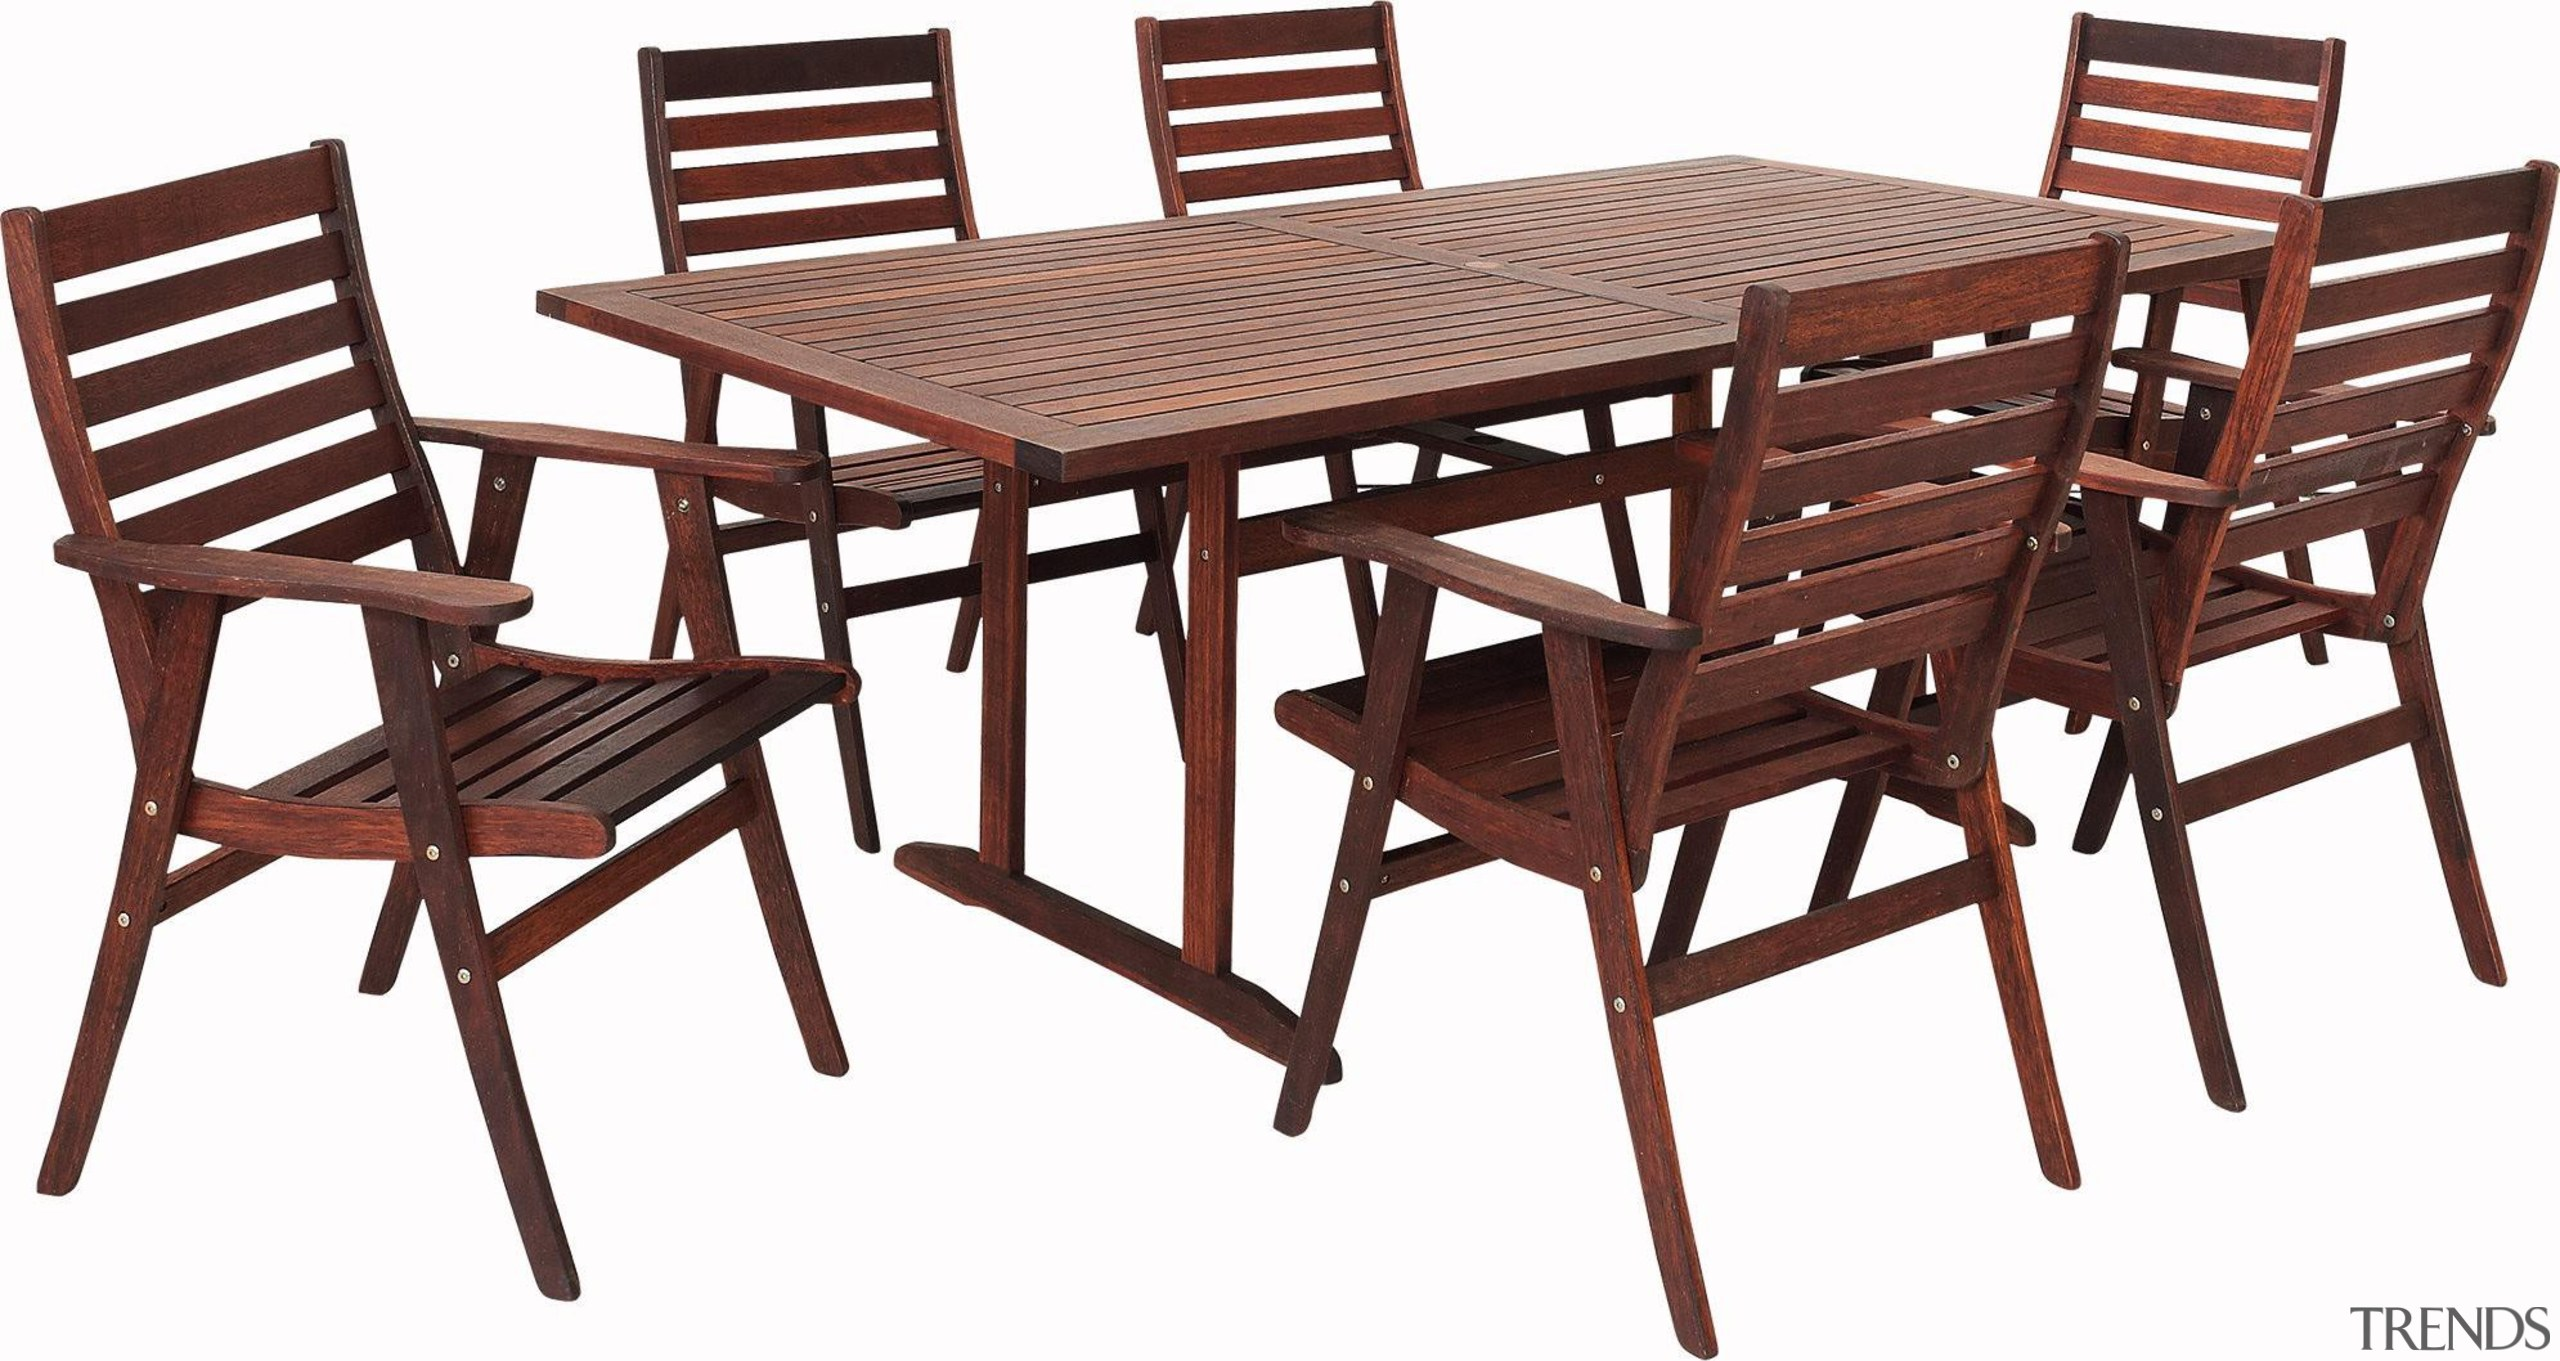 There's nothing quite like a Kiwi summer – chair, furniture, kitchen & dining room table, outdoor furniture, outdoor table, product design, table, wood, white, red